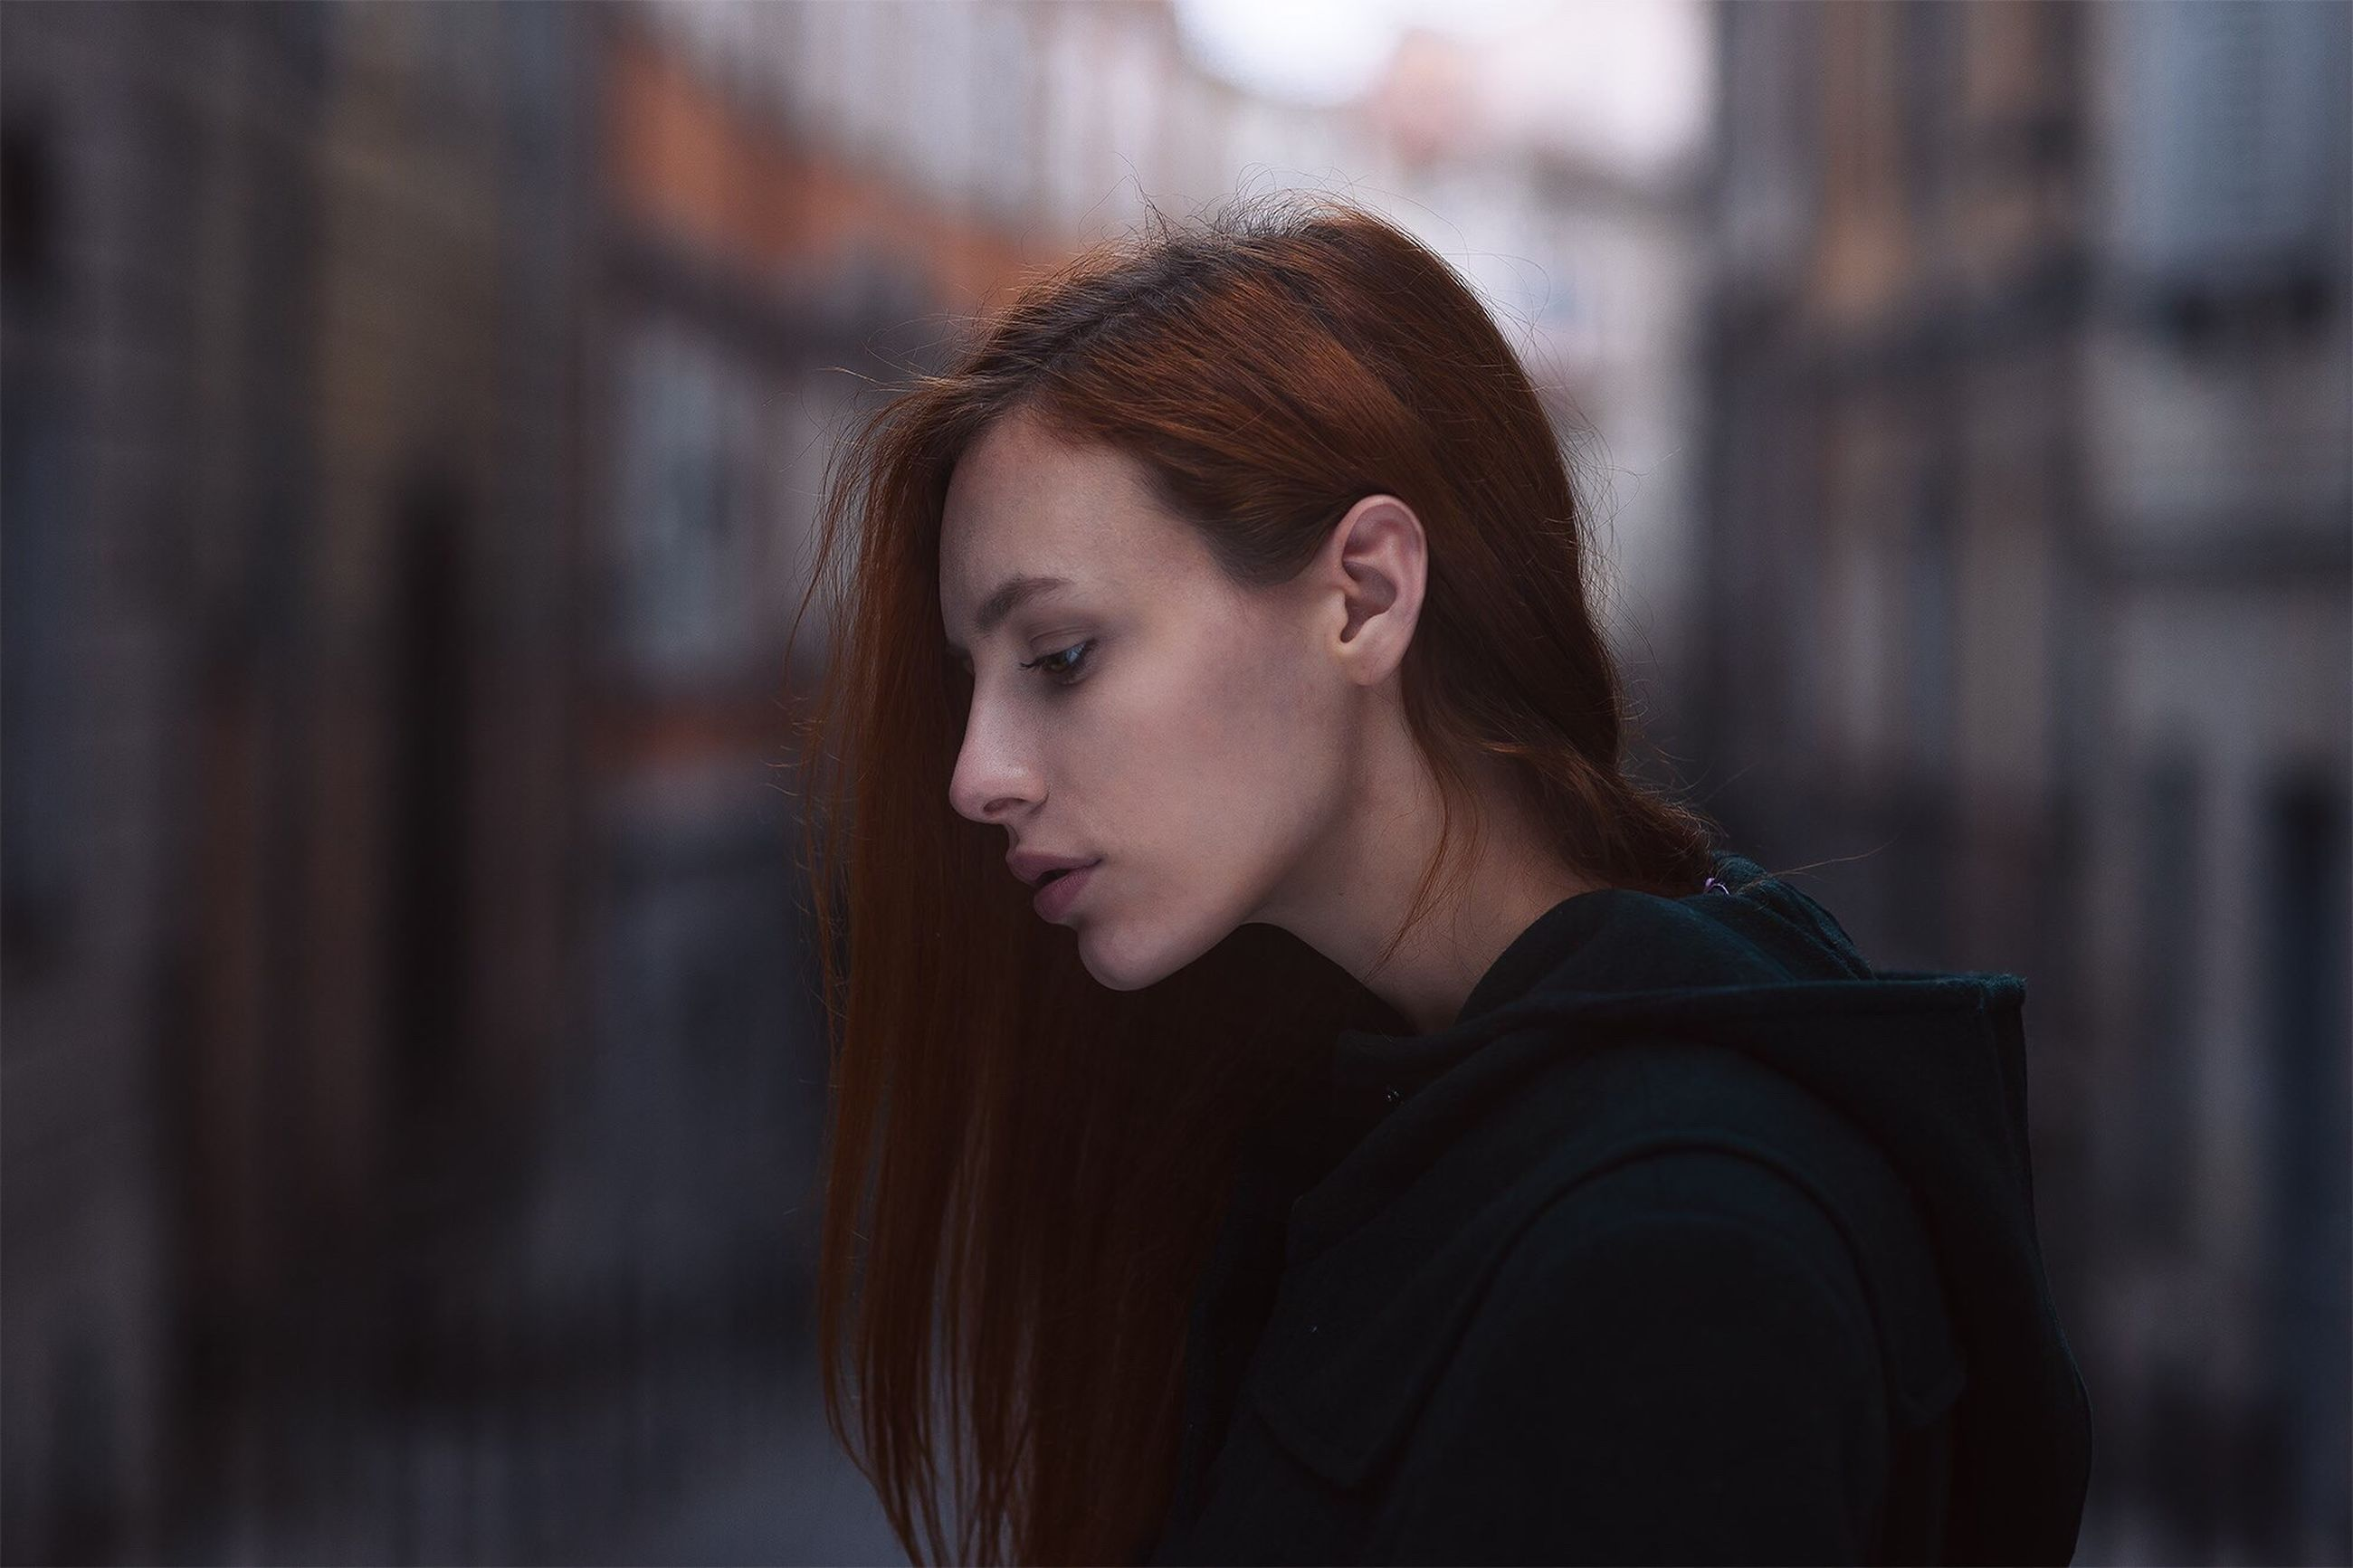 young adult, focus on foreground, lifestyles, headshot, person, front view, young women, leisure activity, close-up, portrait, looking at camera, head and shoulders, contemplation, human face, long hair, casual clothing